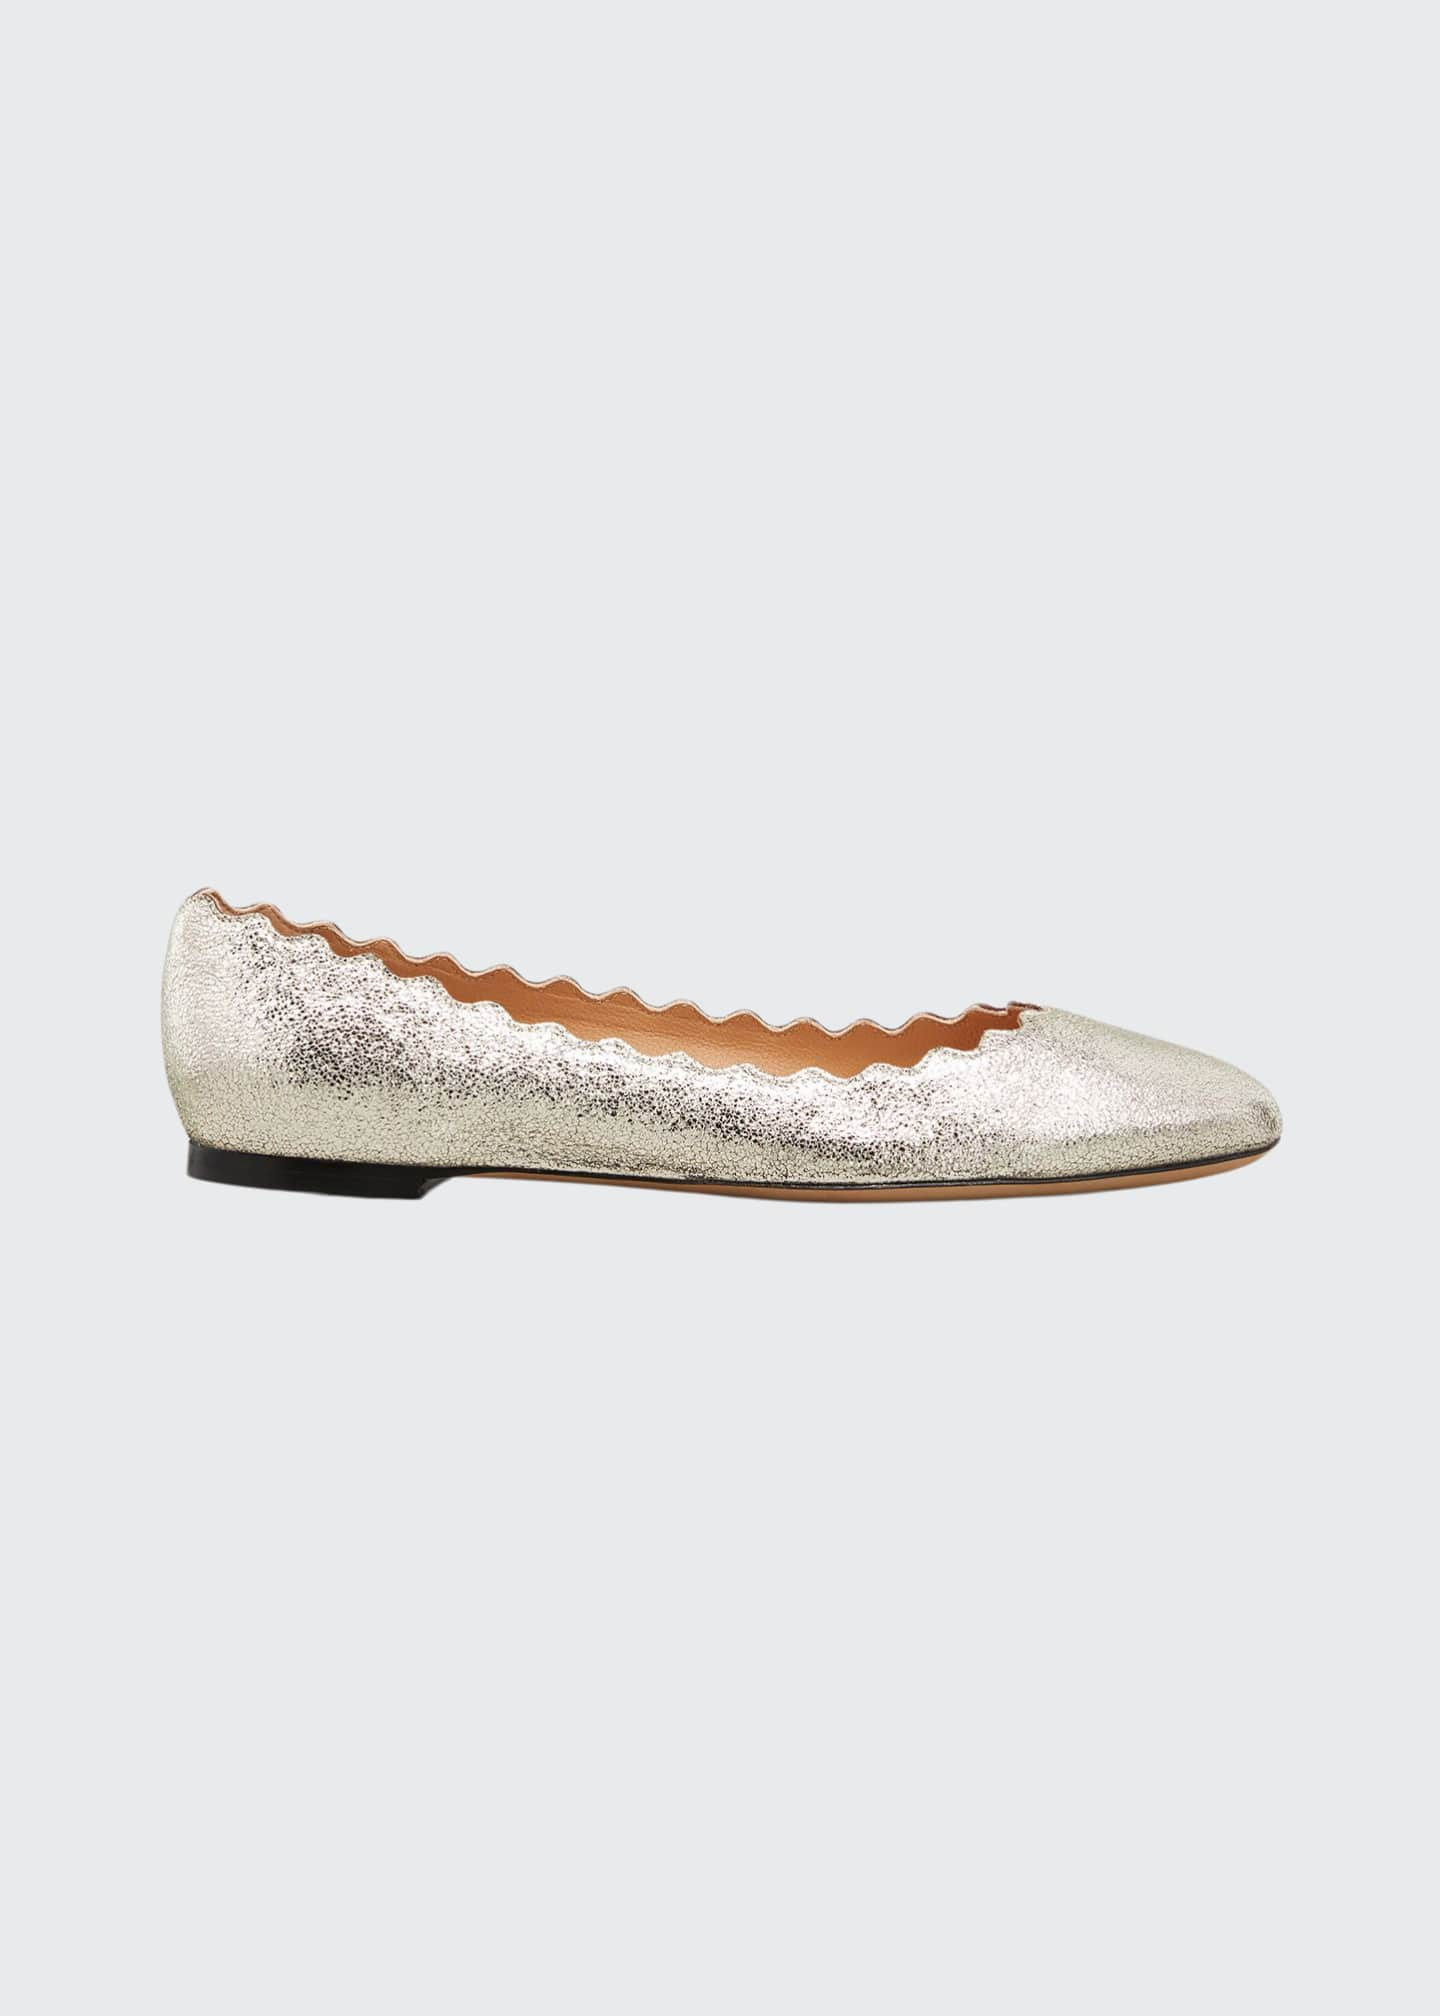 Chloe Lauren Scalloped Metallic Leather Ballet Flats